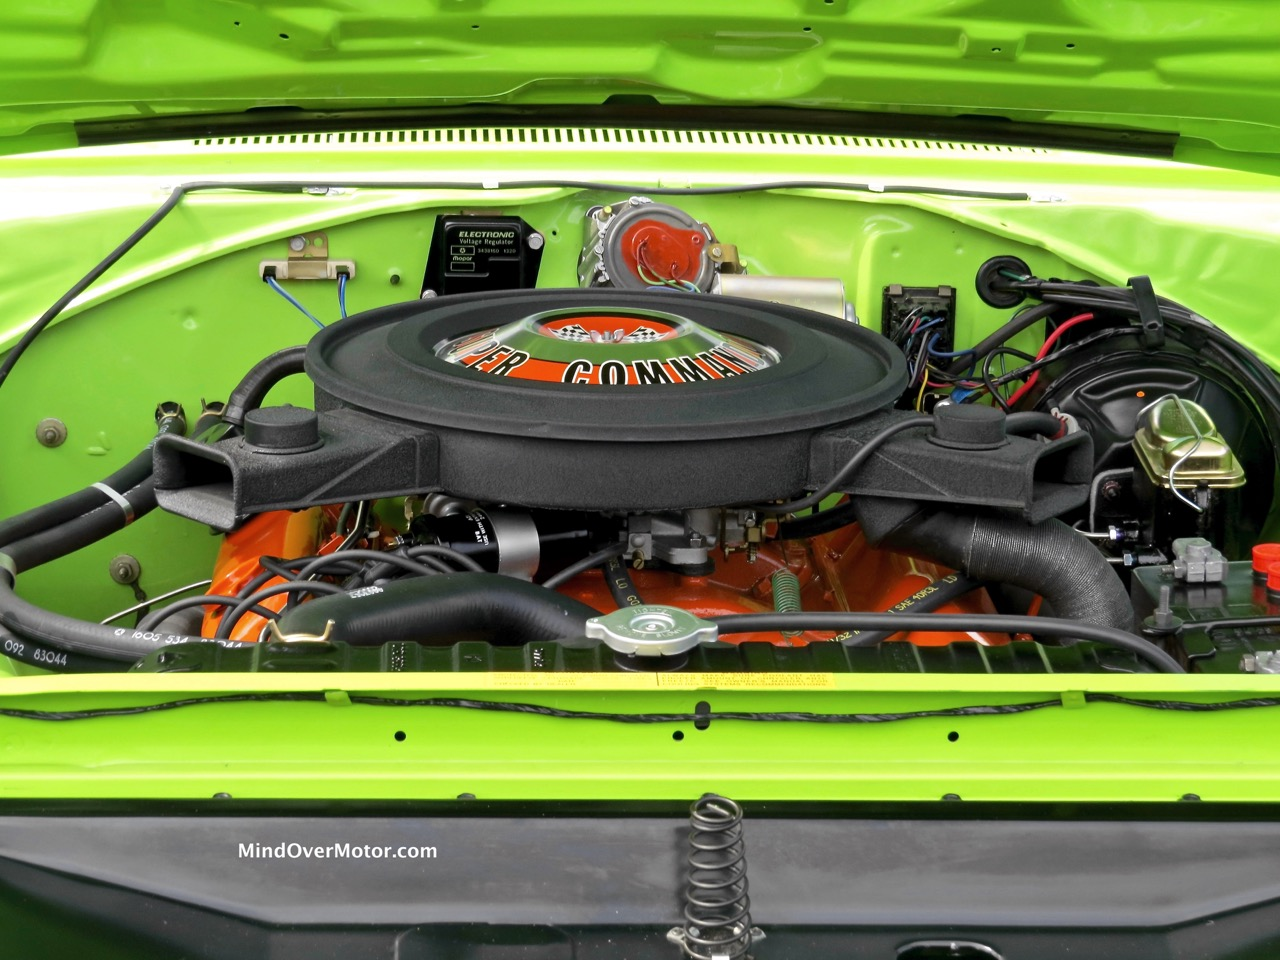 1970 Plymouth Superbird Engine